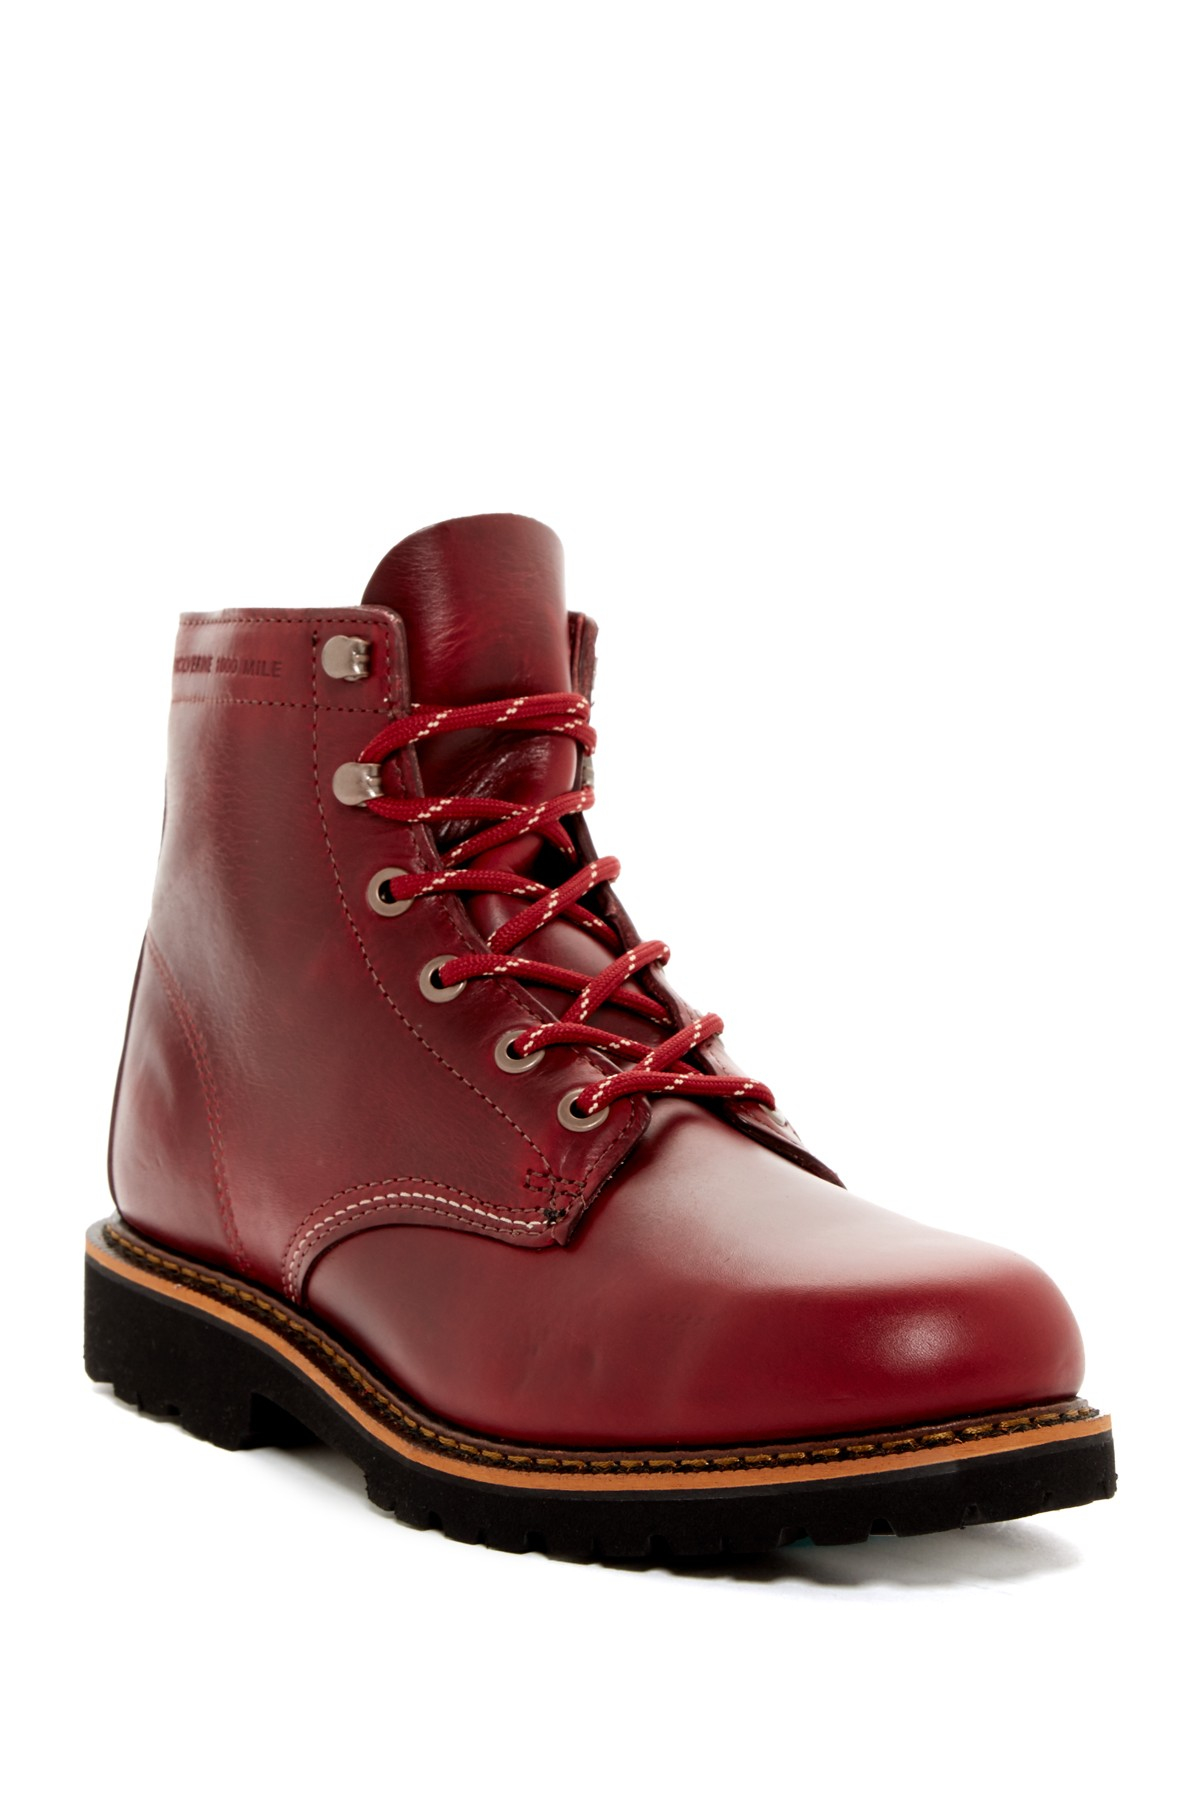 Wolverine Duvall Combat Boot In Red For Men Lyst